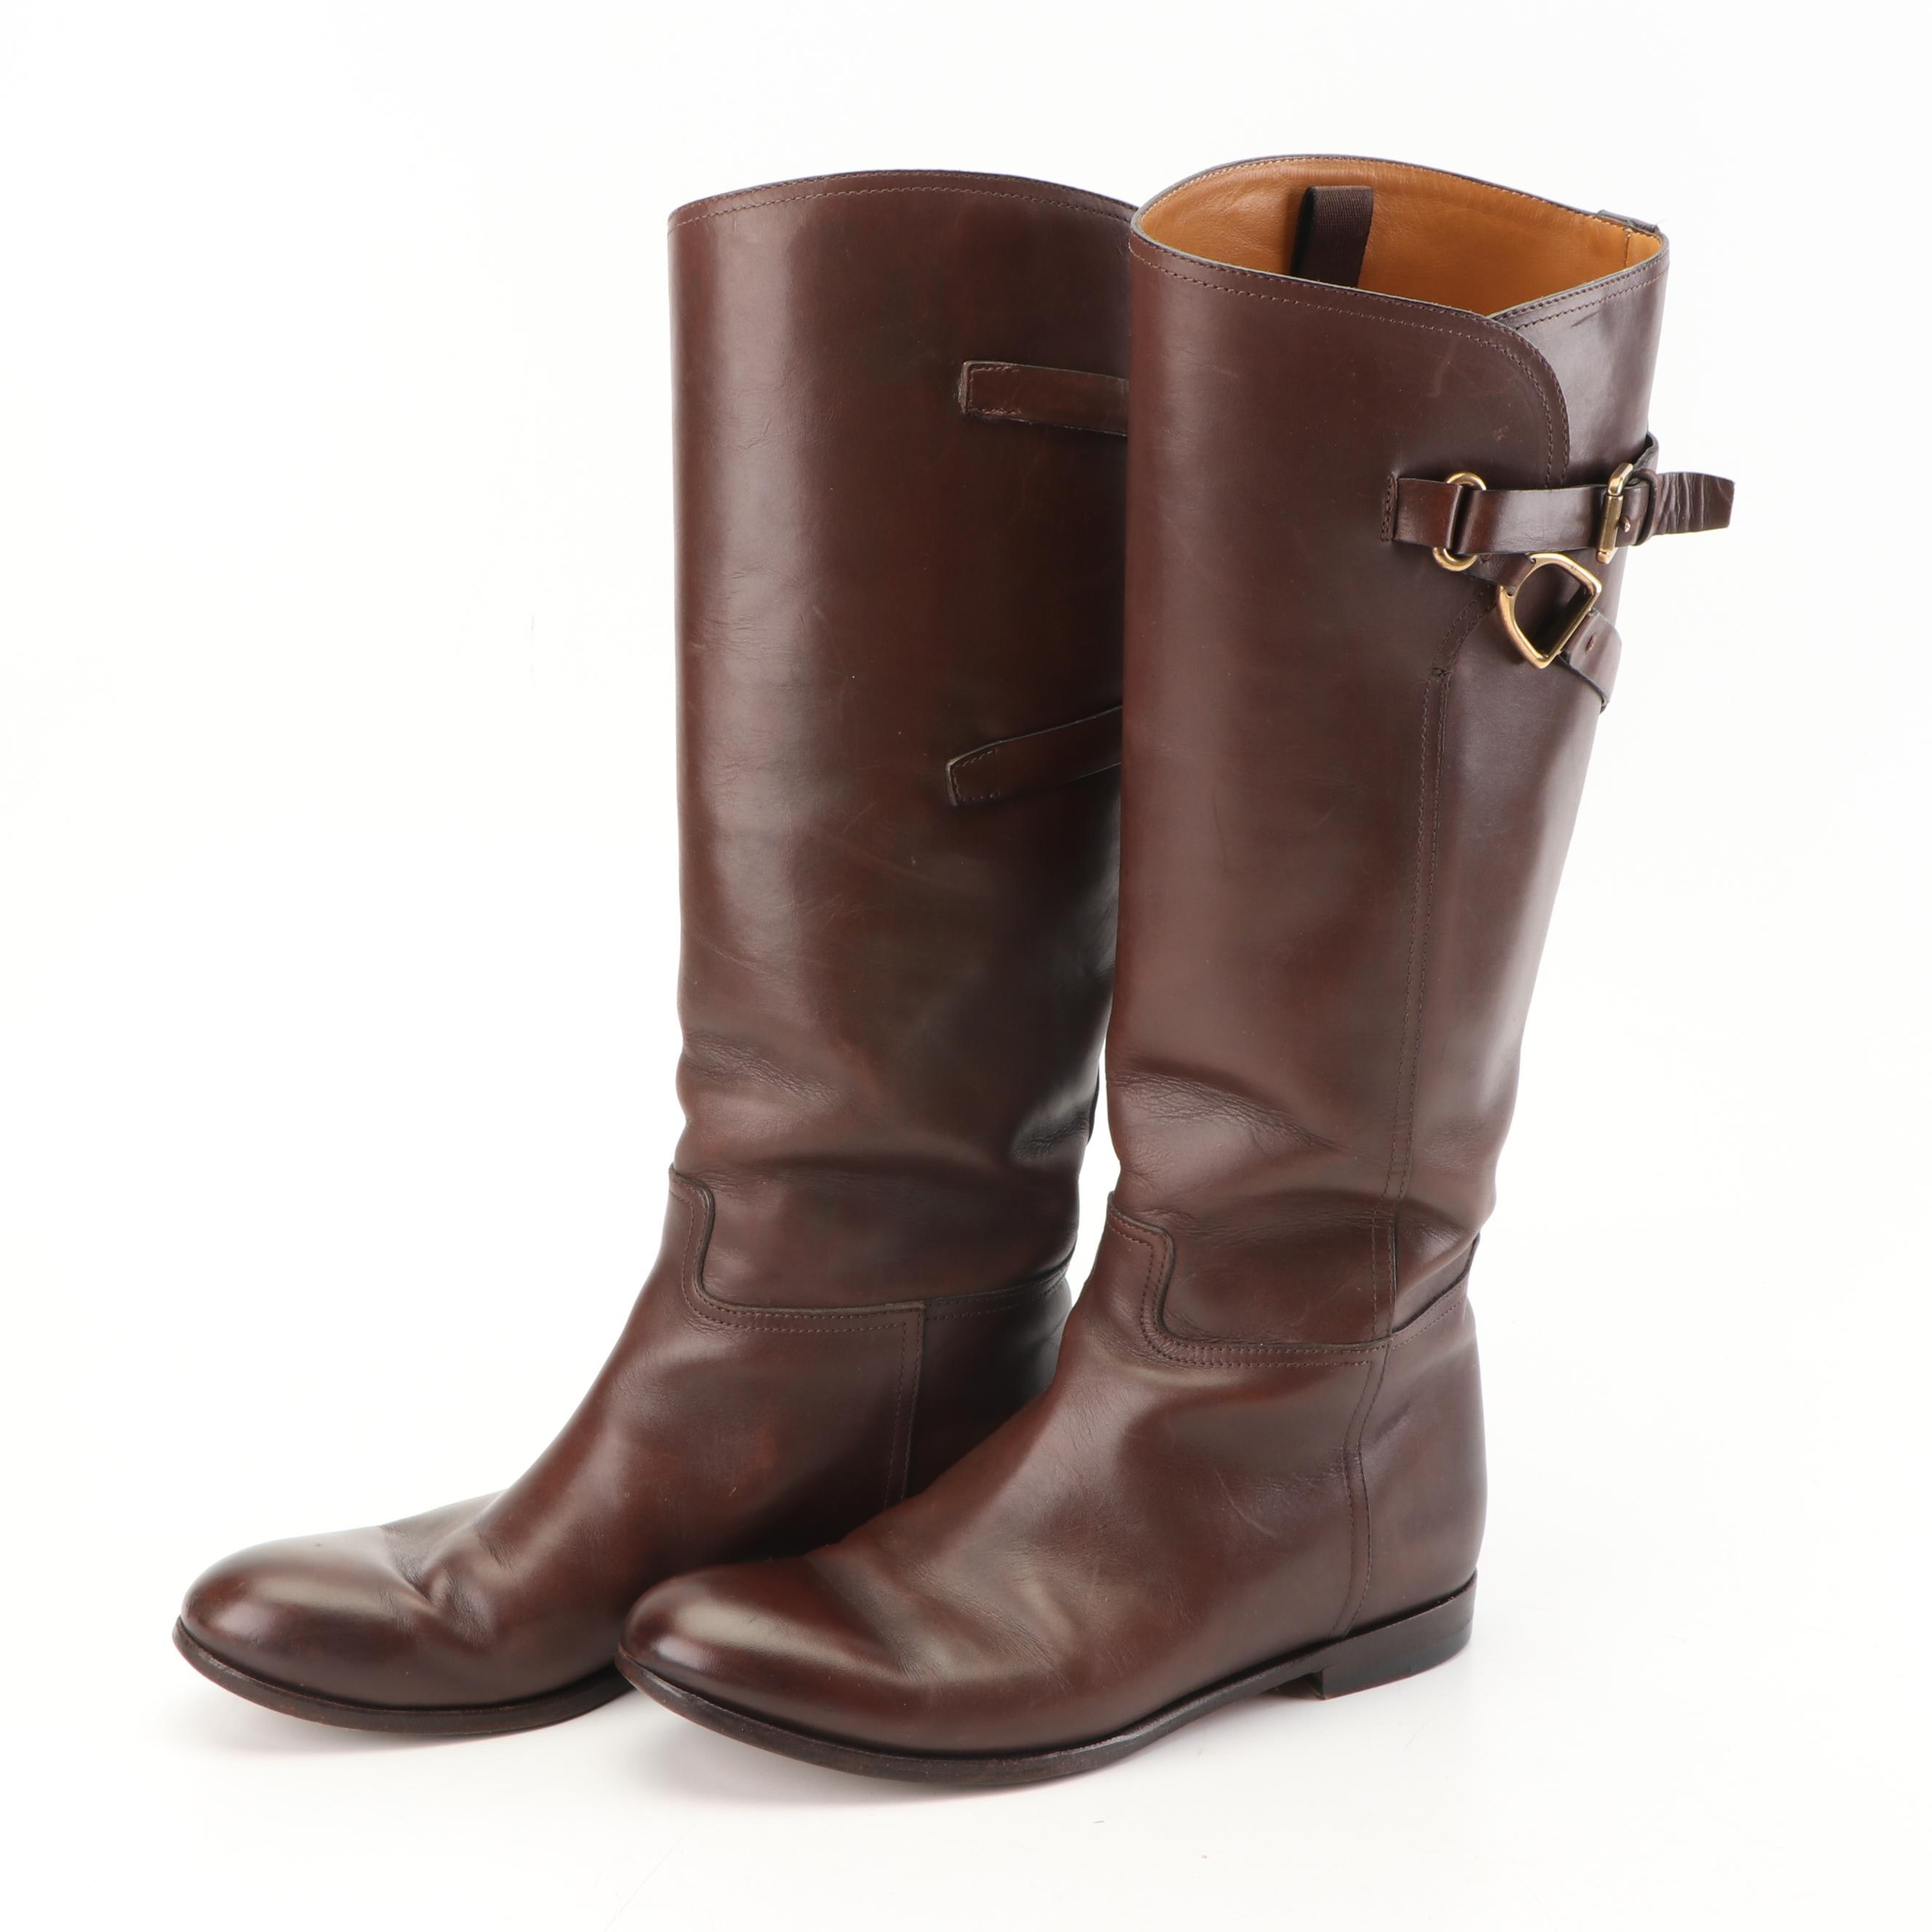 Women's Ralph Lauren Collection Chestnut Brown Leather Riding Boots